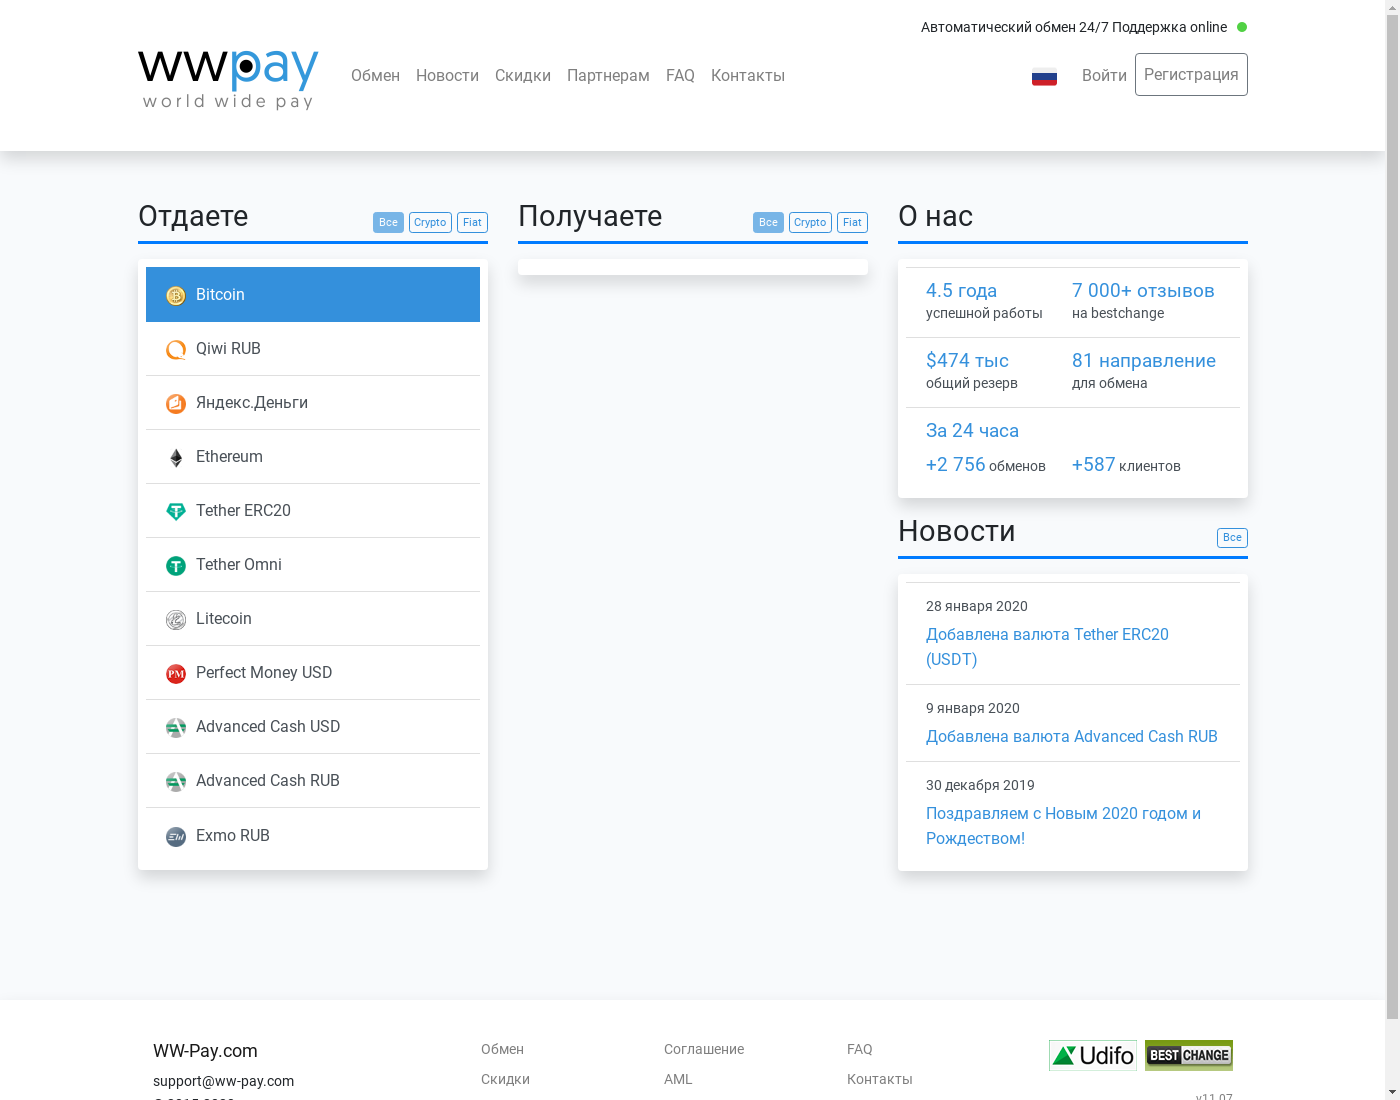 ww-pay user interface: the home page in English